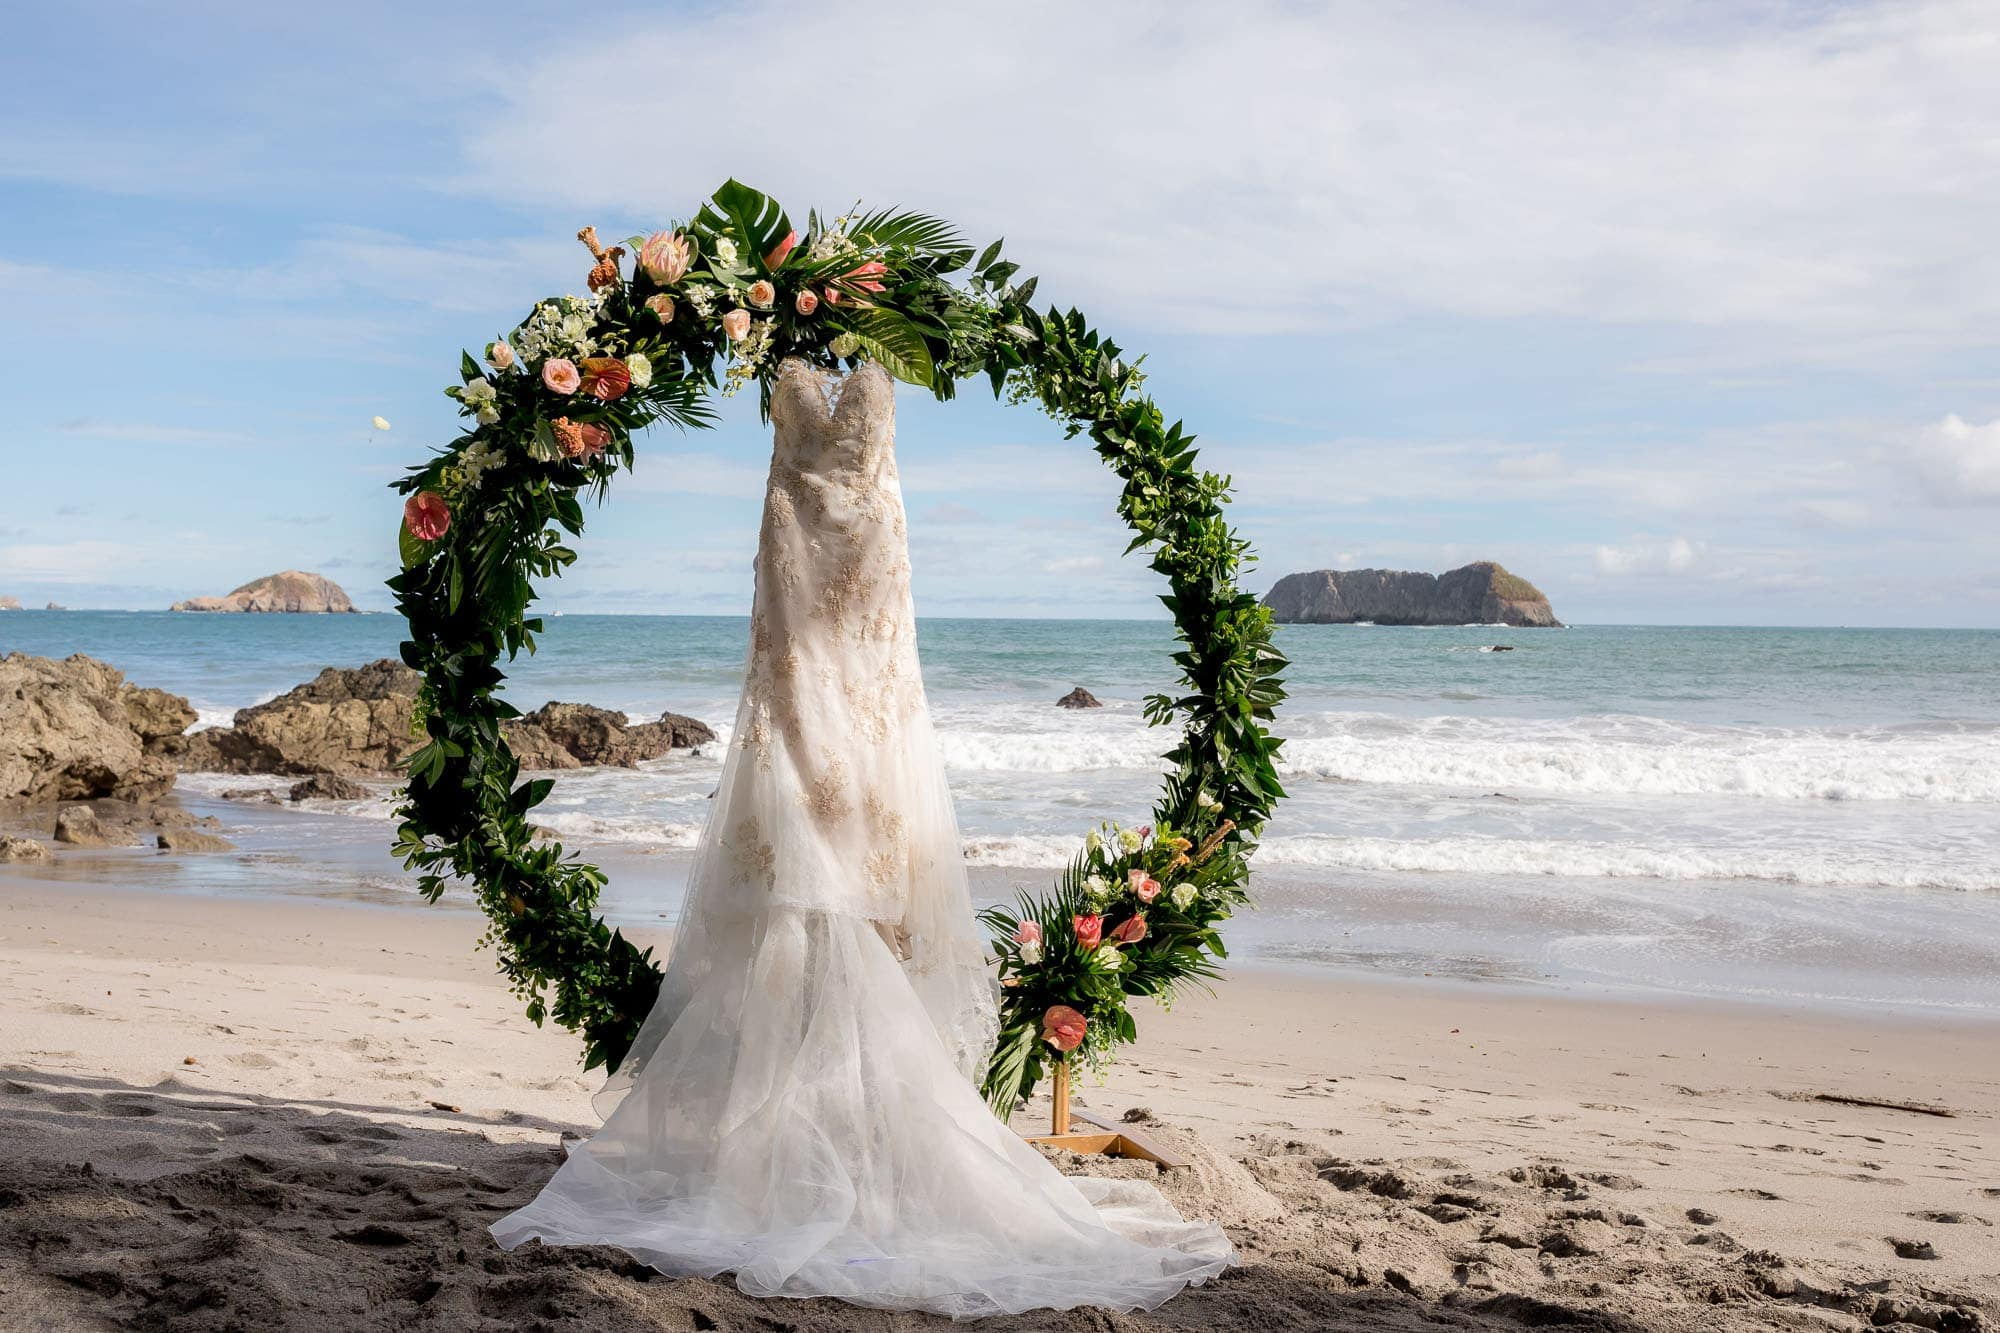 The bride's dress hanging in their circular ceremony arbor